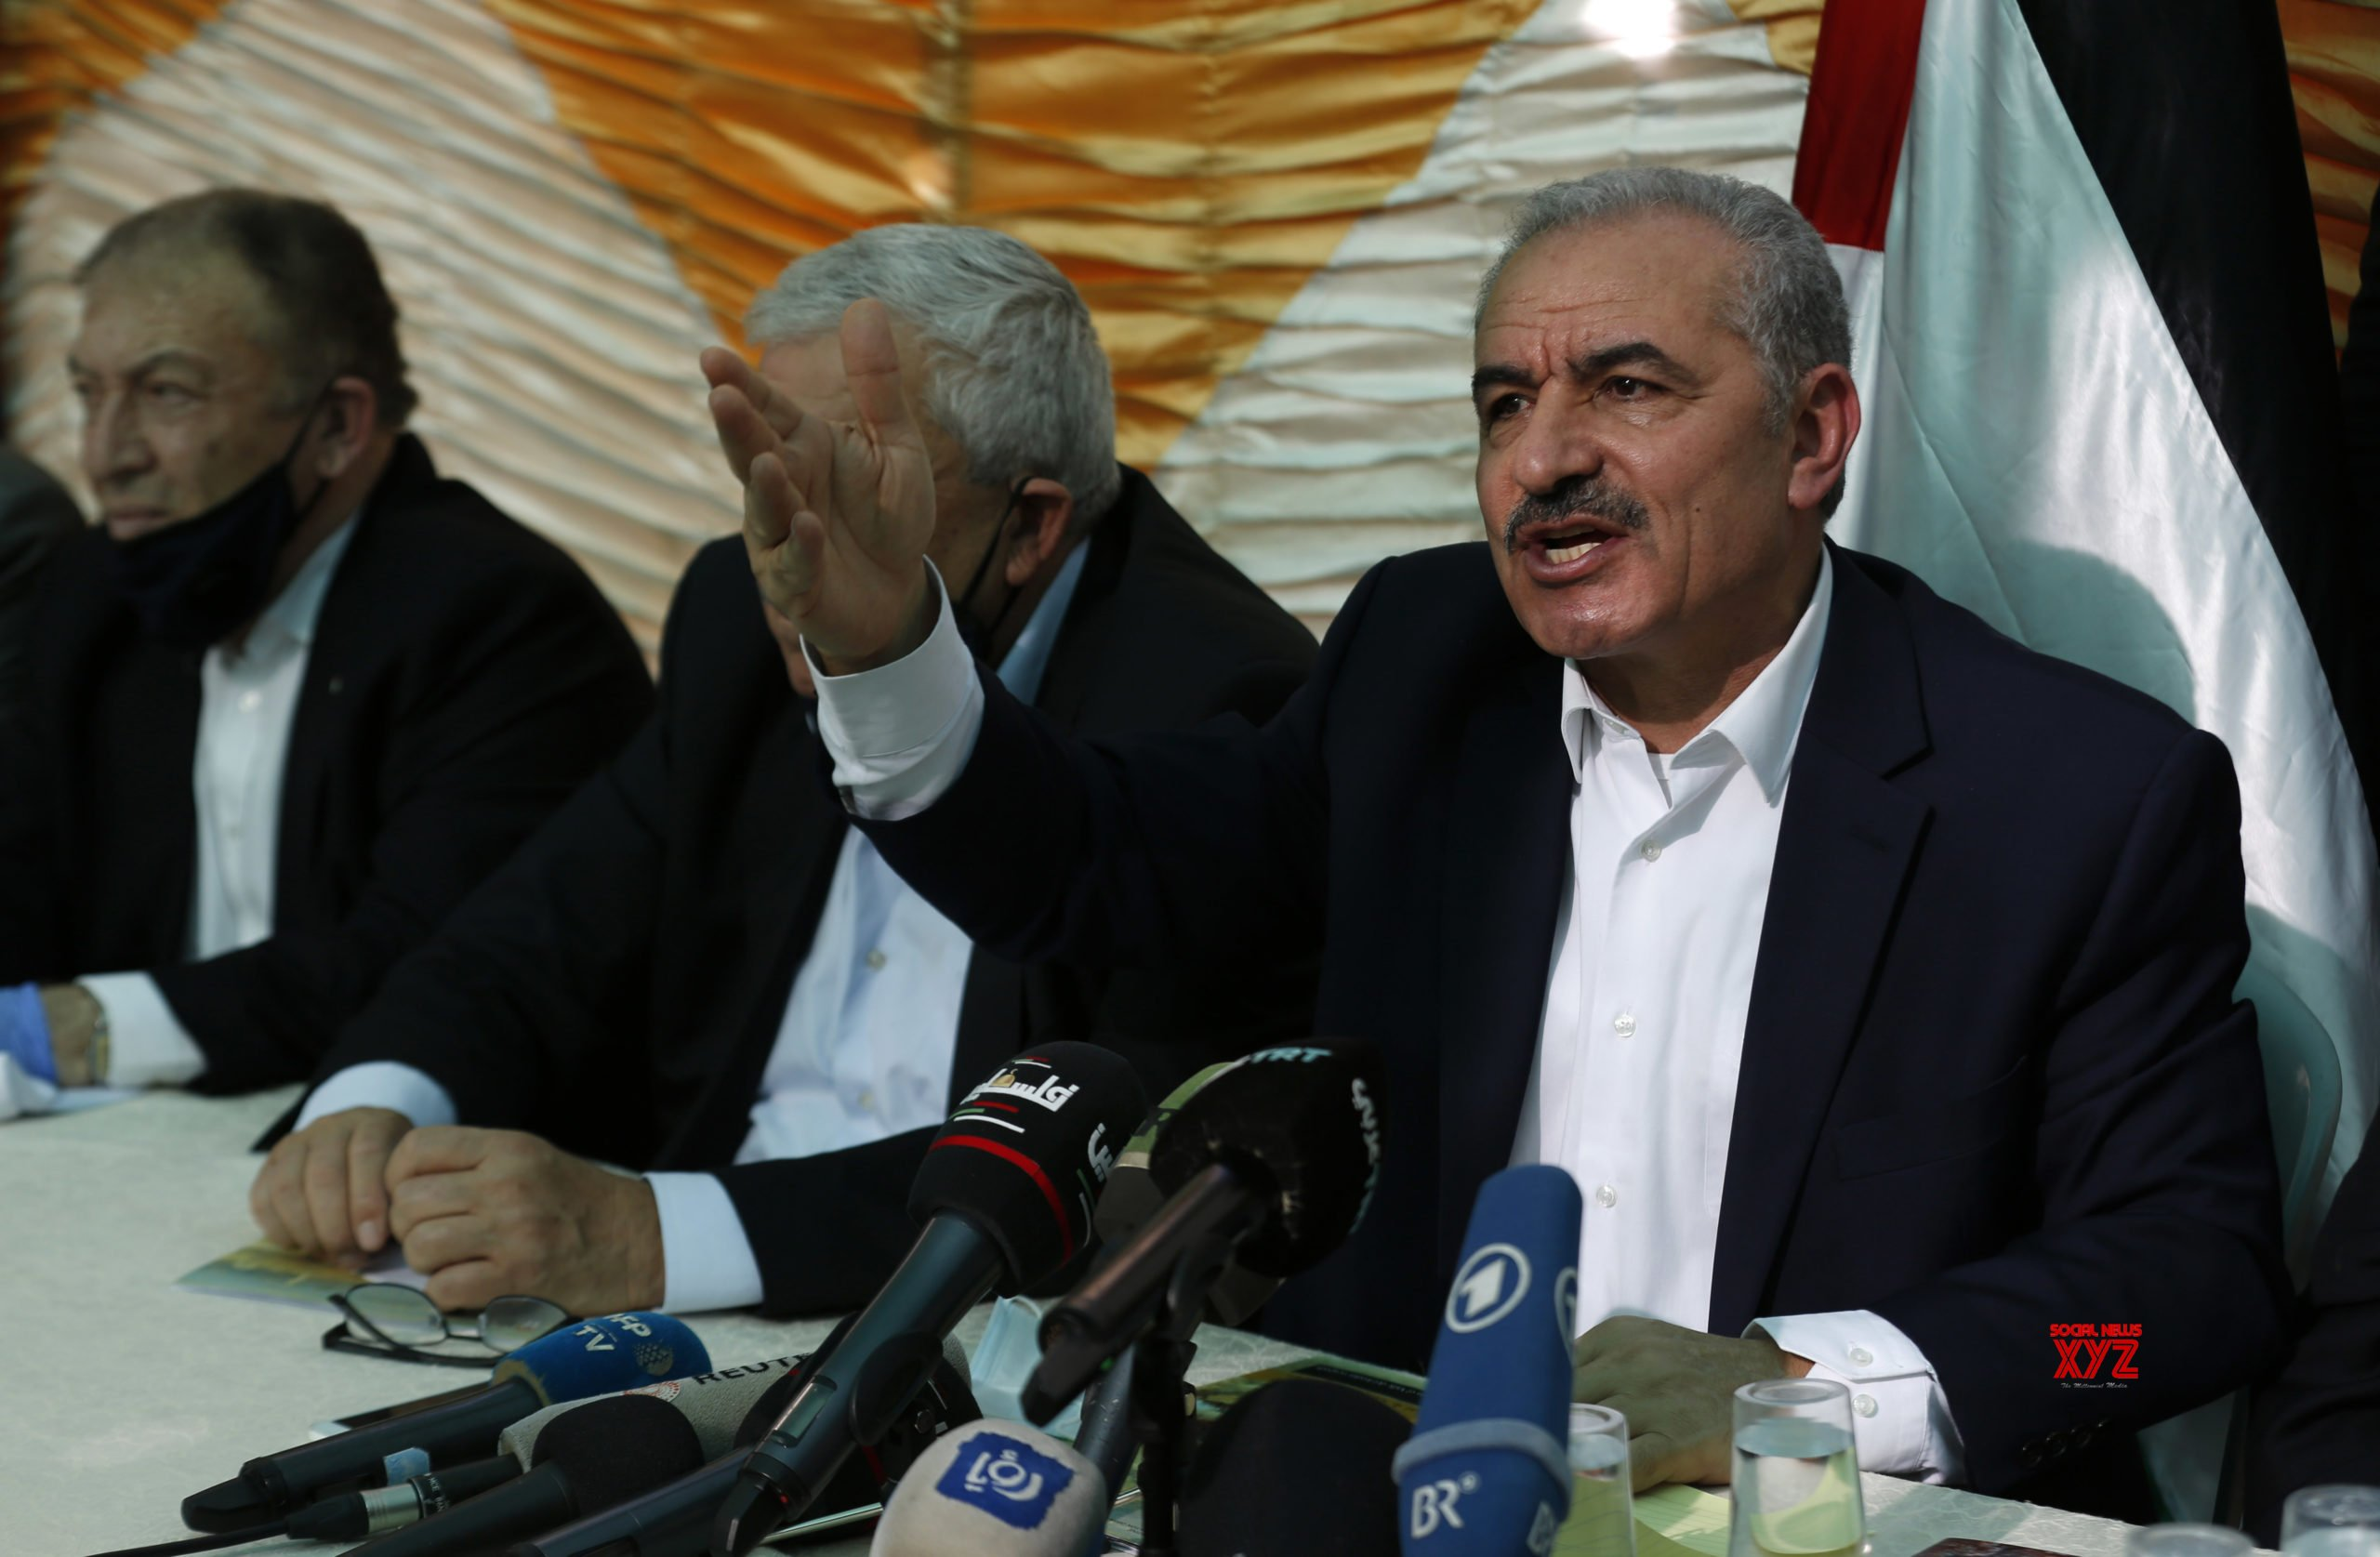 Palestine hasn't received Arab financial aid for over a yr